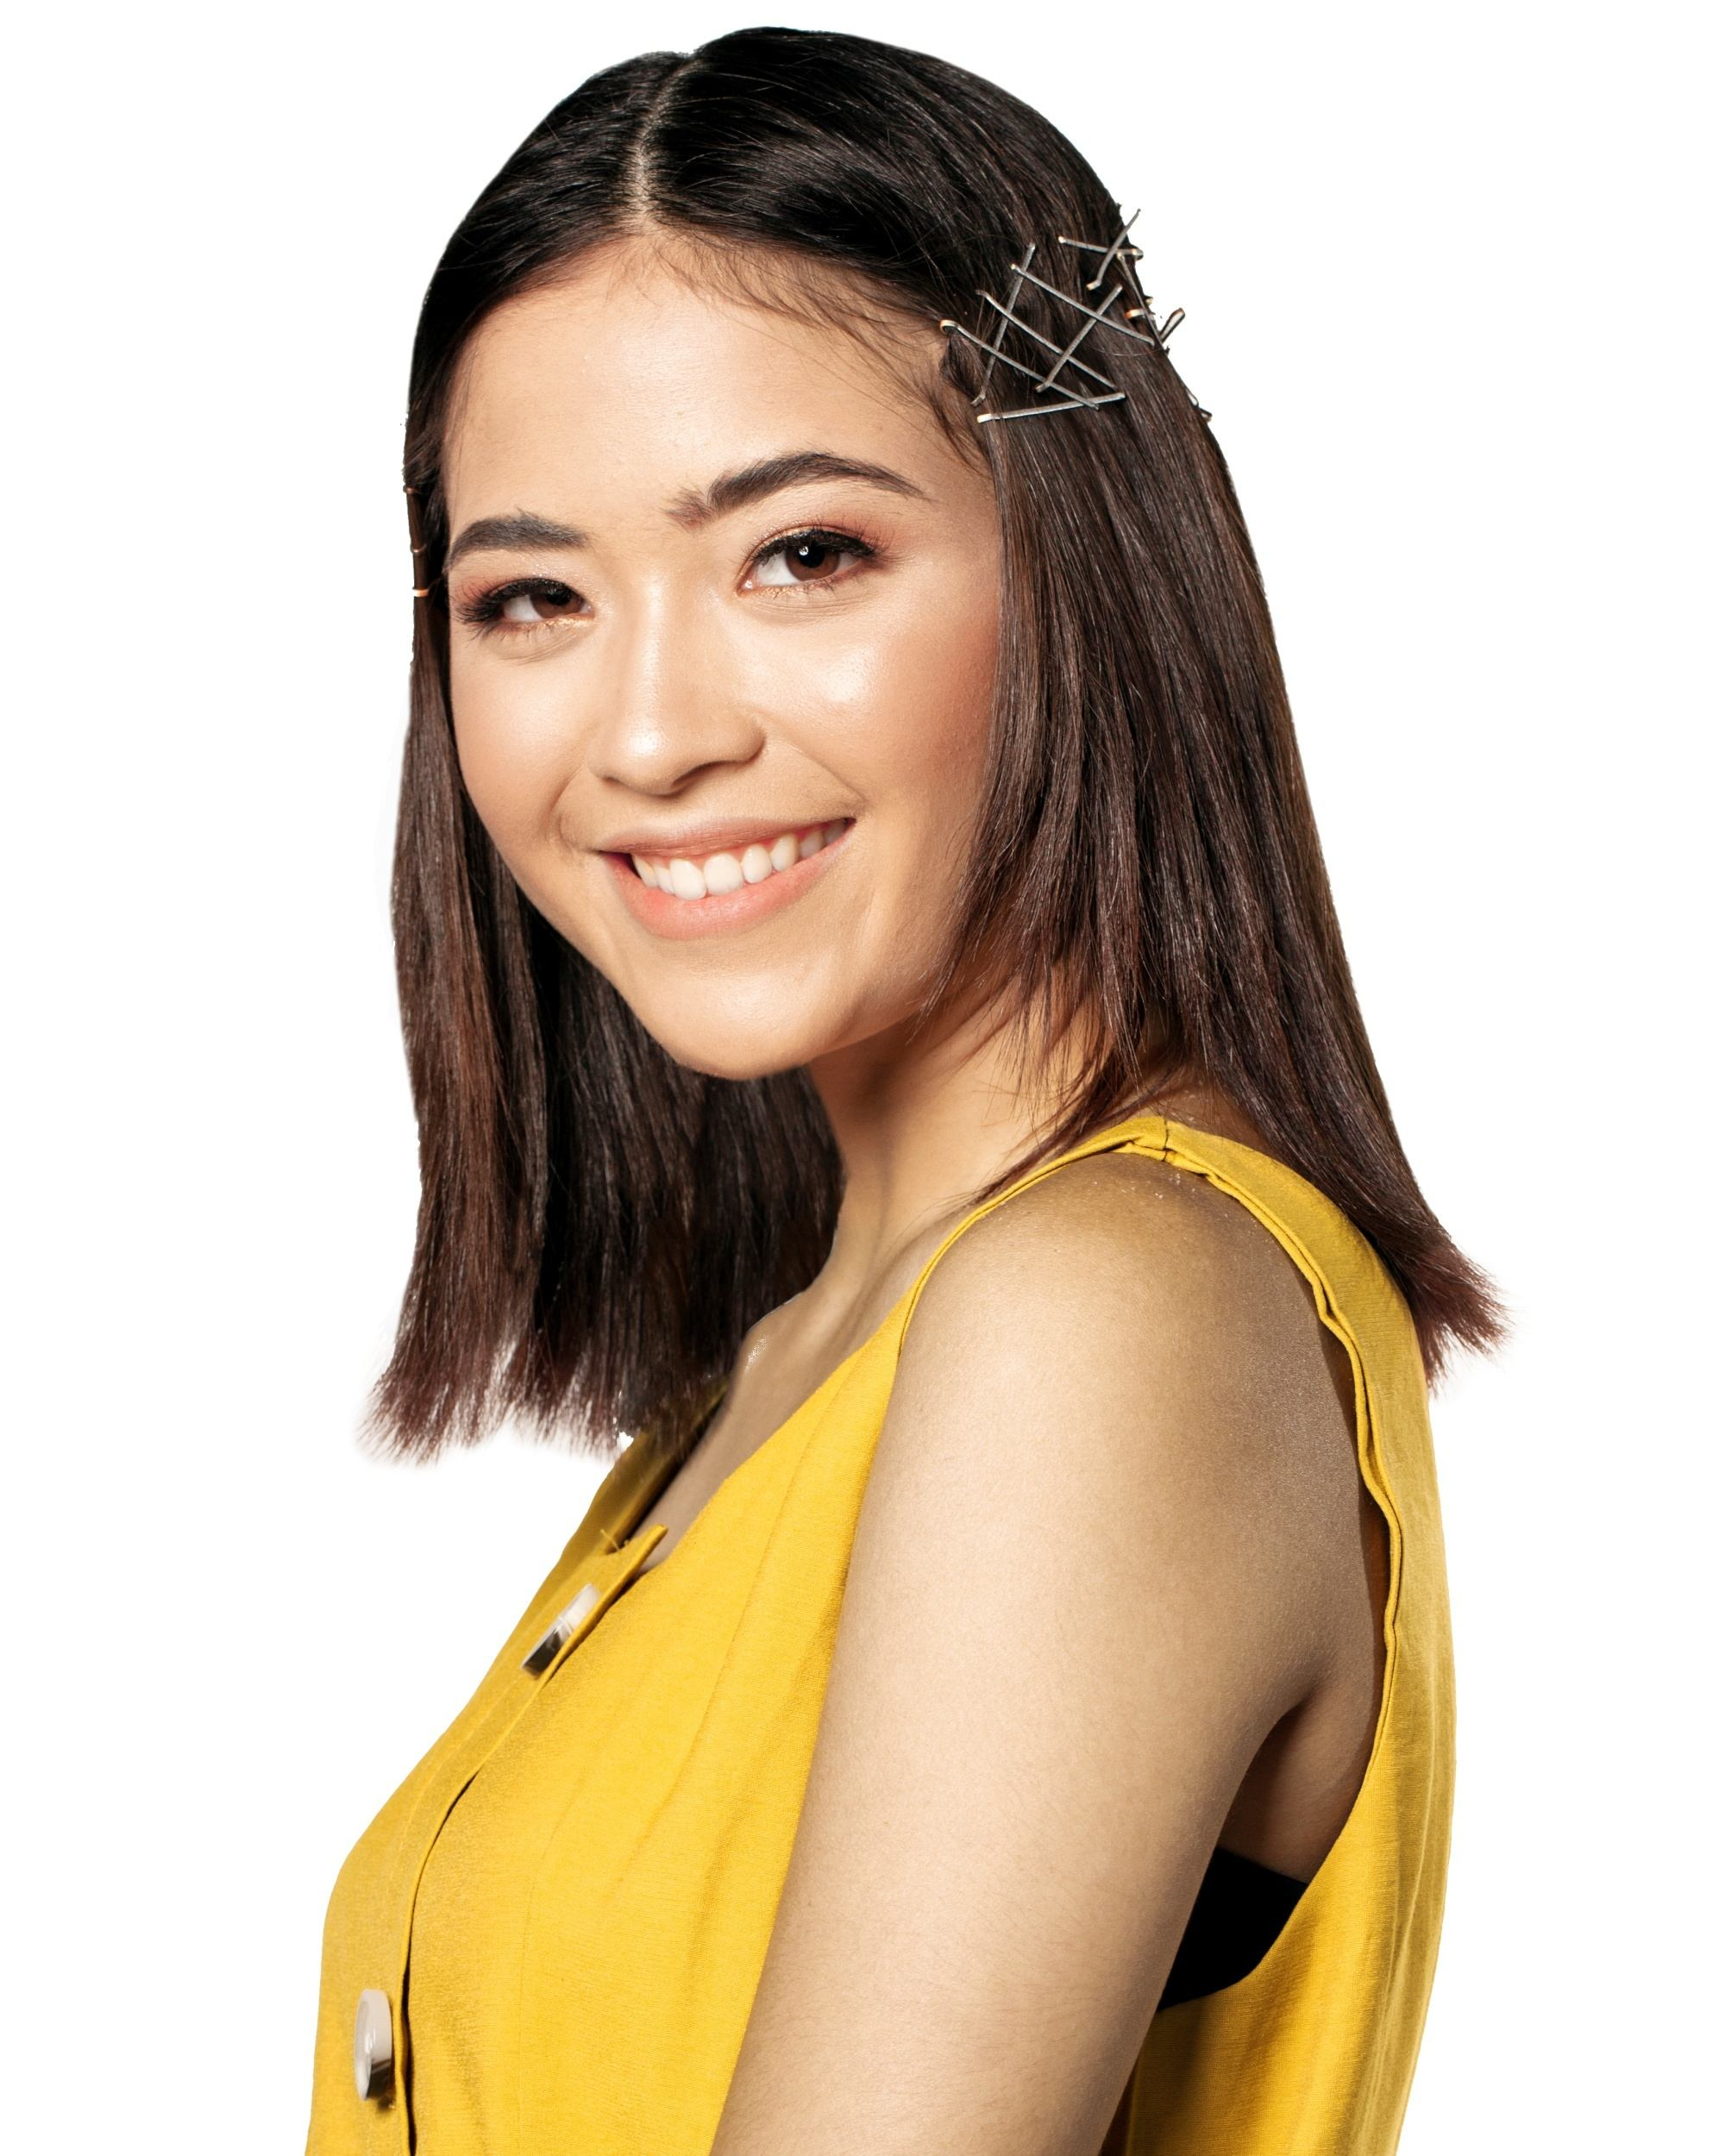 Bobby pin hair crown: Asian woman with shoulder-length brown hair smiling